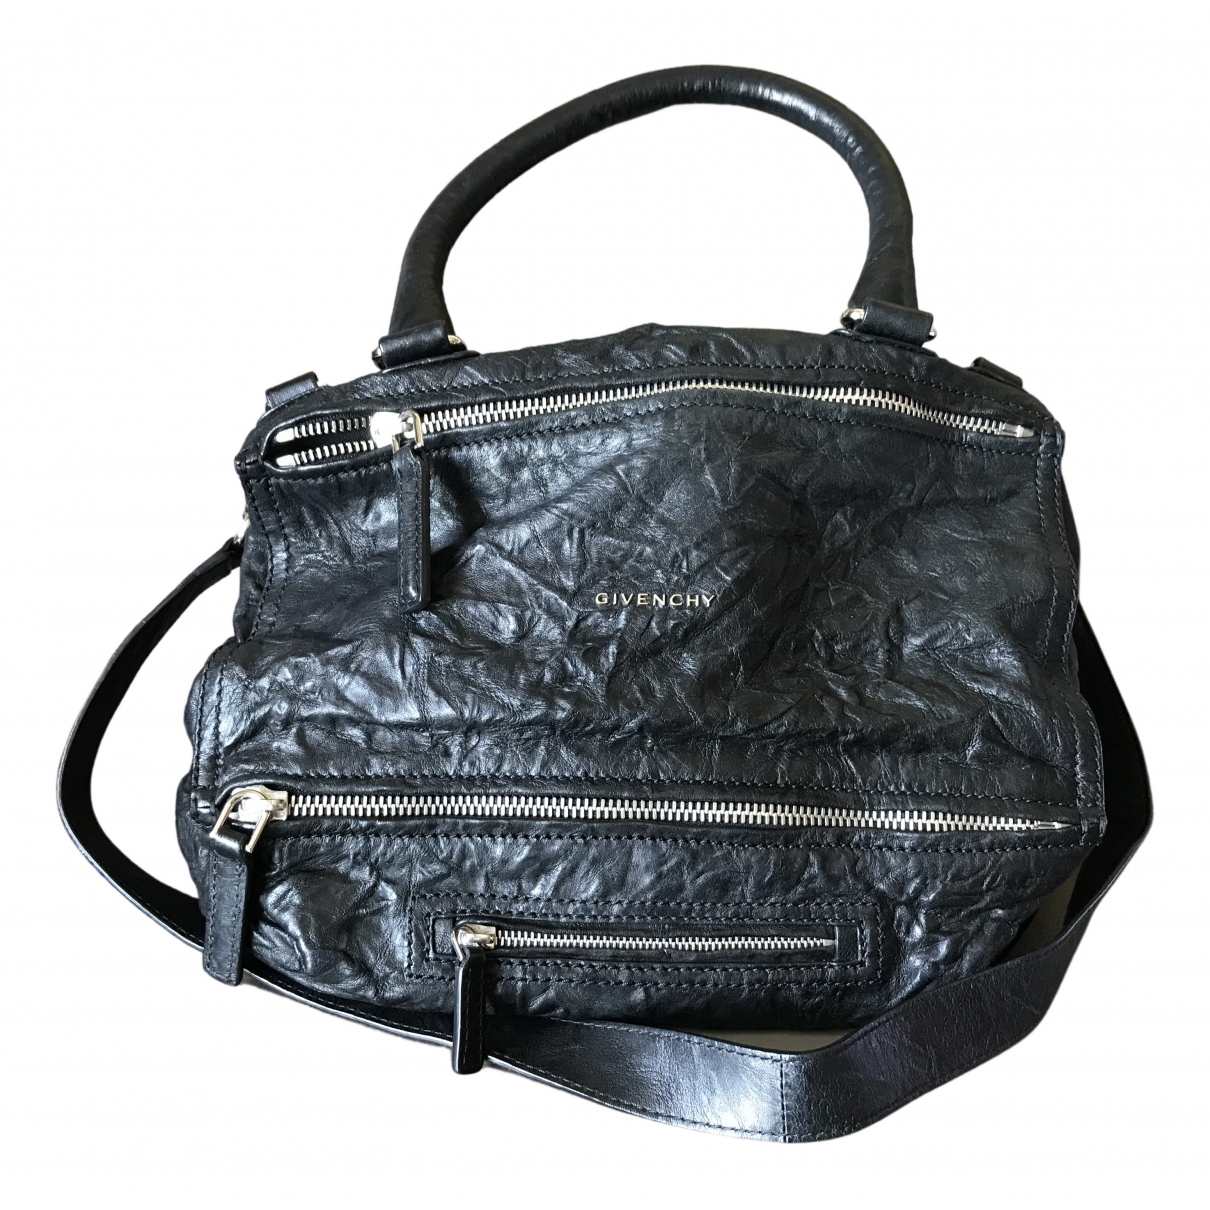 Givenchy Pandora Black Leather handbag for Women N